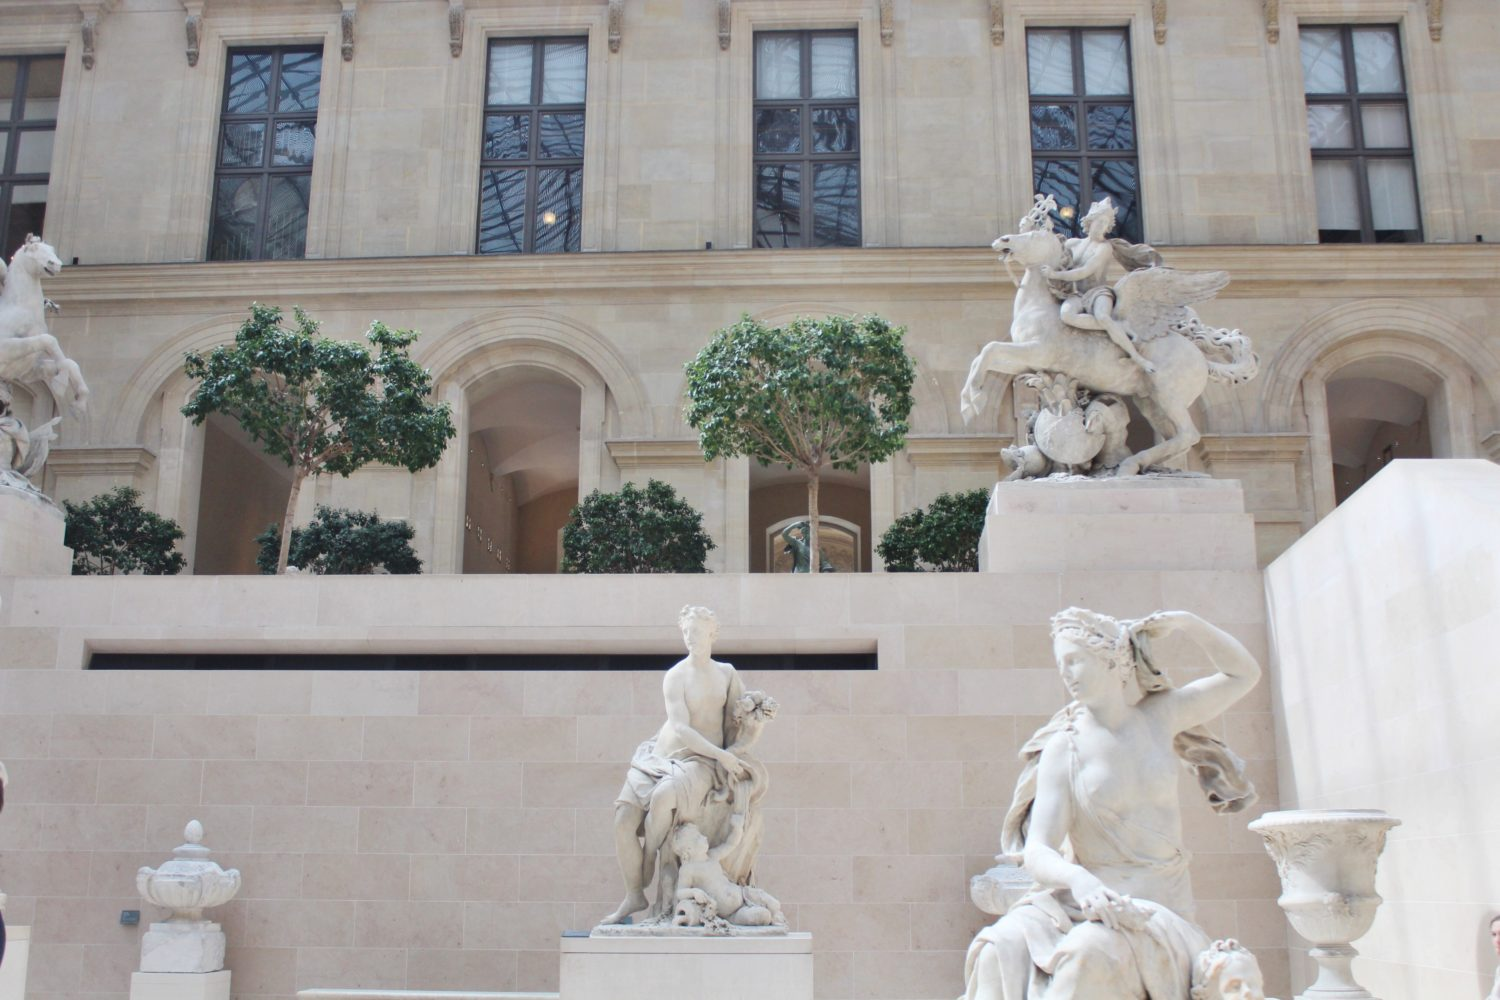 The Sculpture Garden at The Louvre